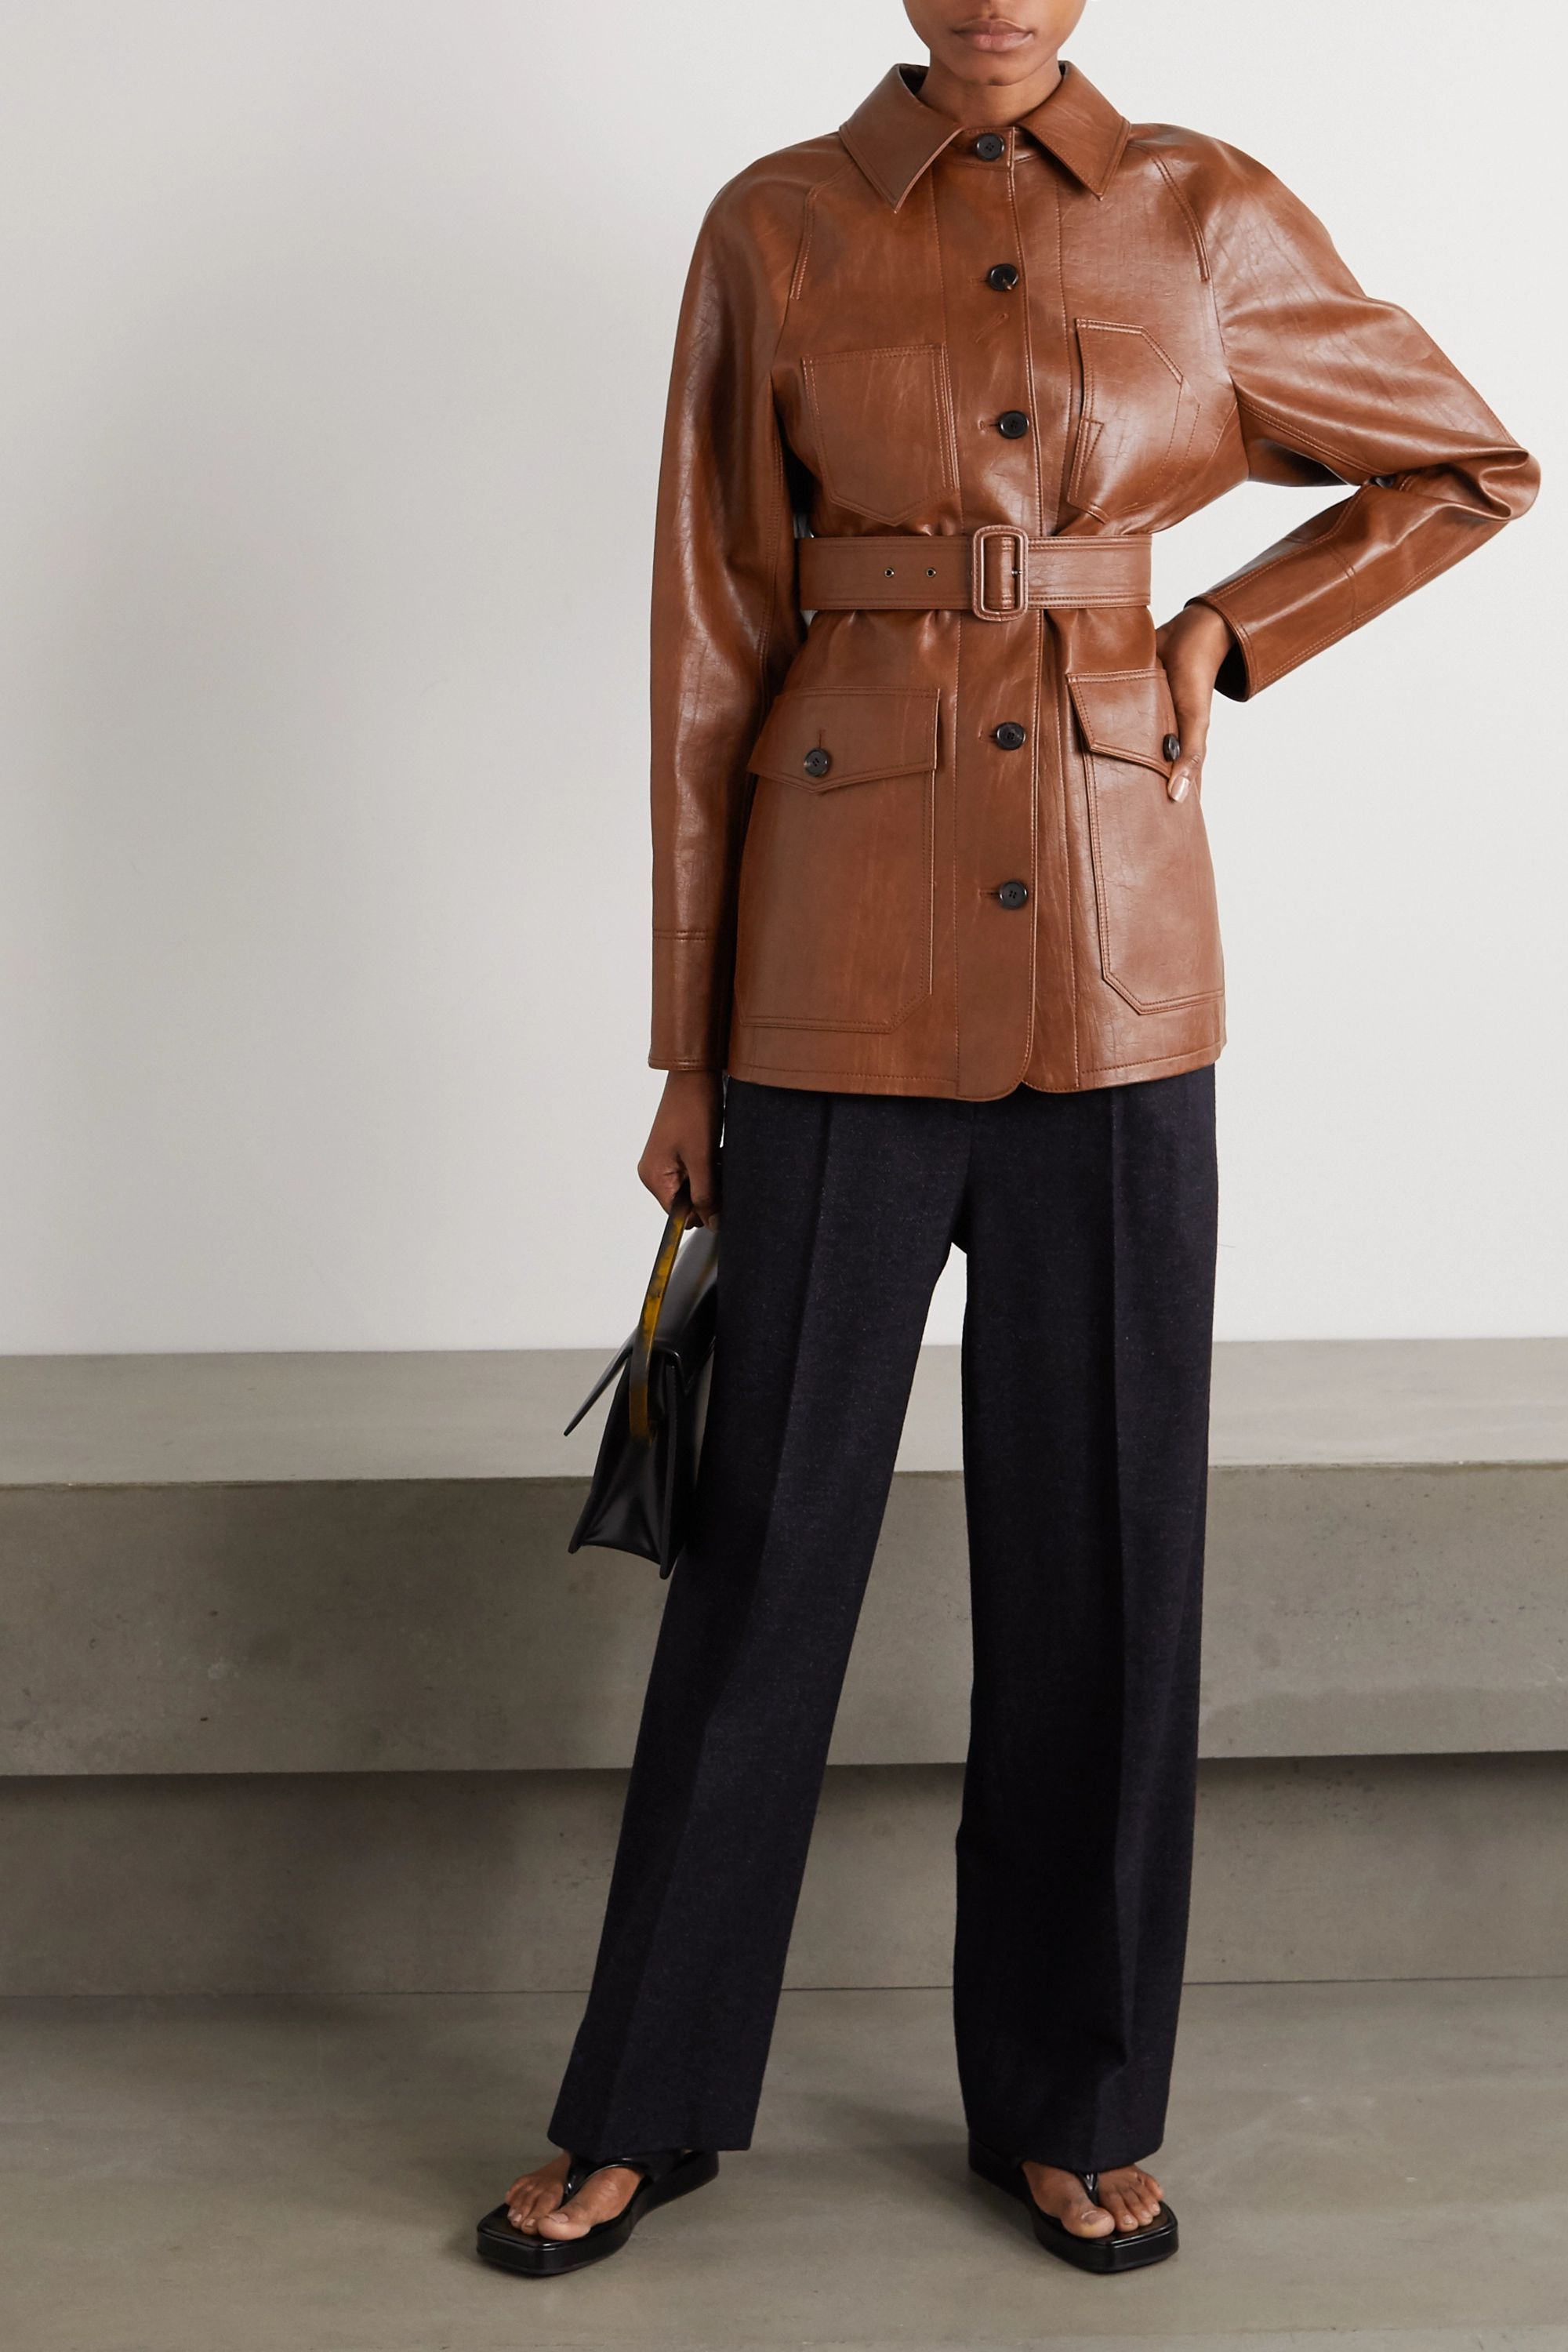 Brown Belted Faux Leather Jacket Lvir Leather Jacket Faux Leather Jackets Brown Leather Jacket [ jpg ]